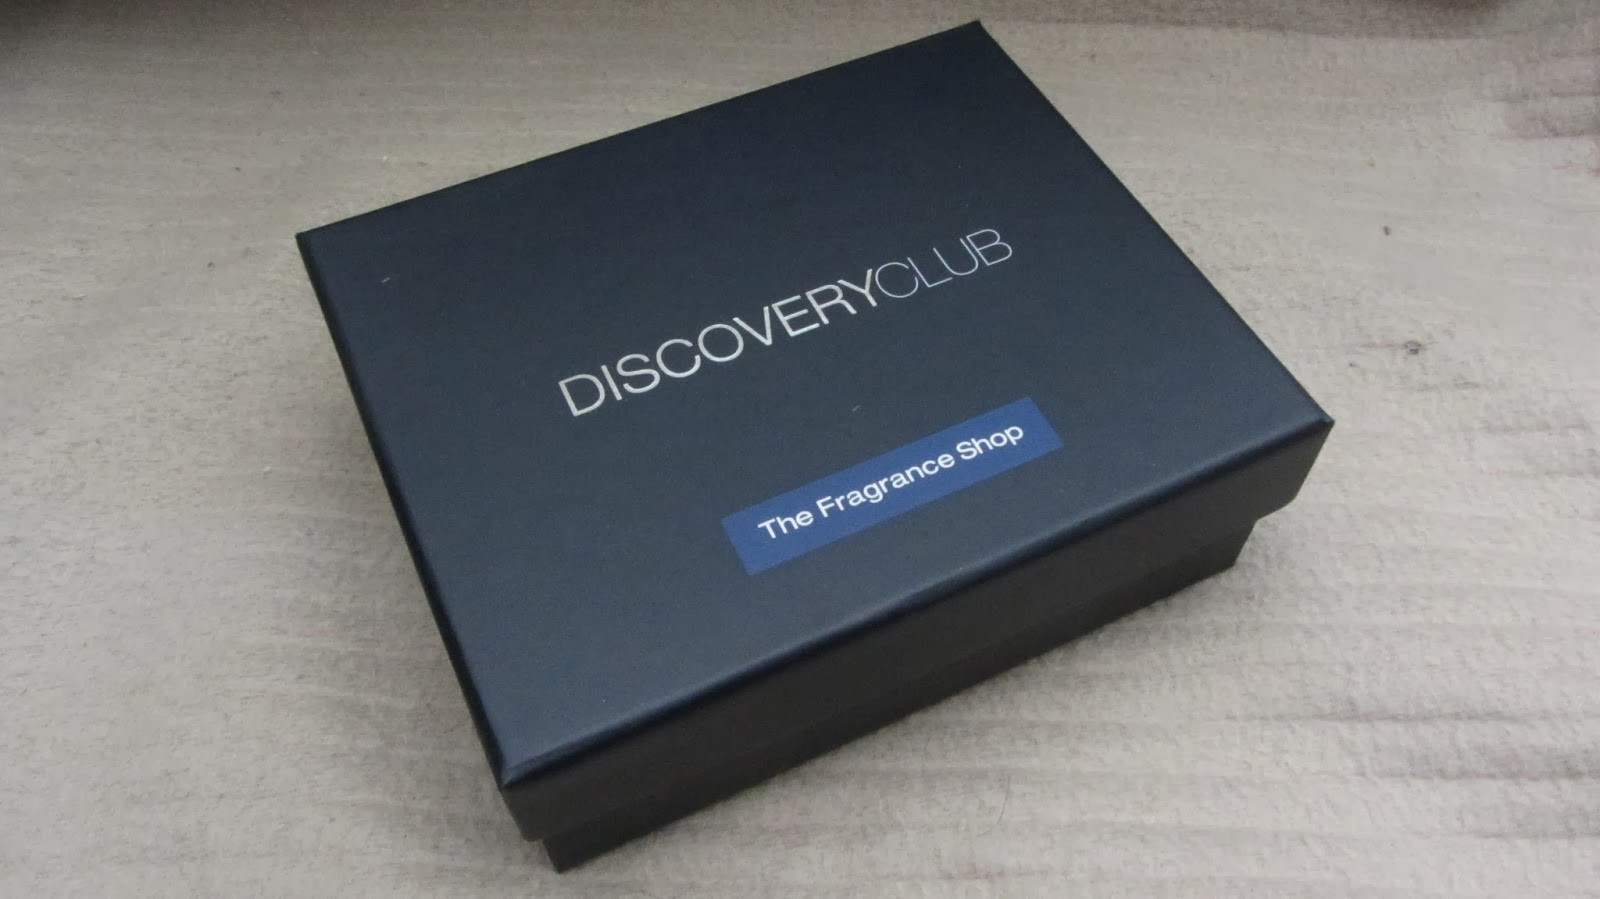 THE_FRAGRANCE_SHOP_5TH_EDITION_DISCOVERY_CLUB